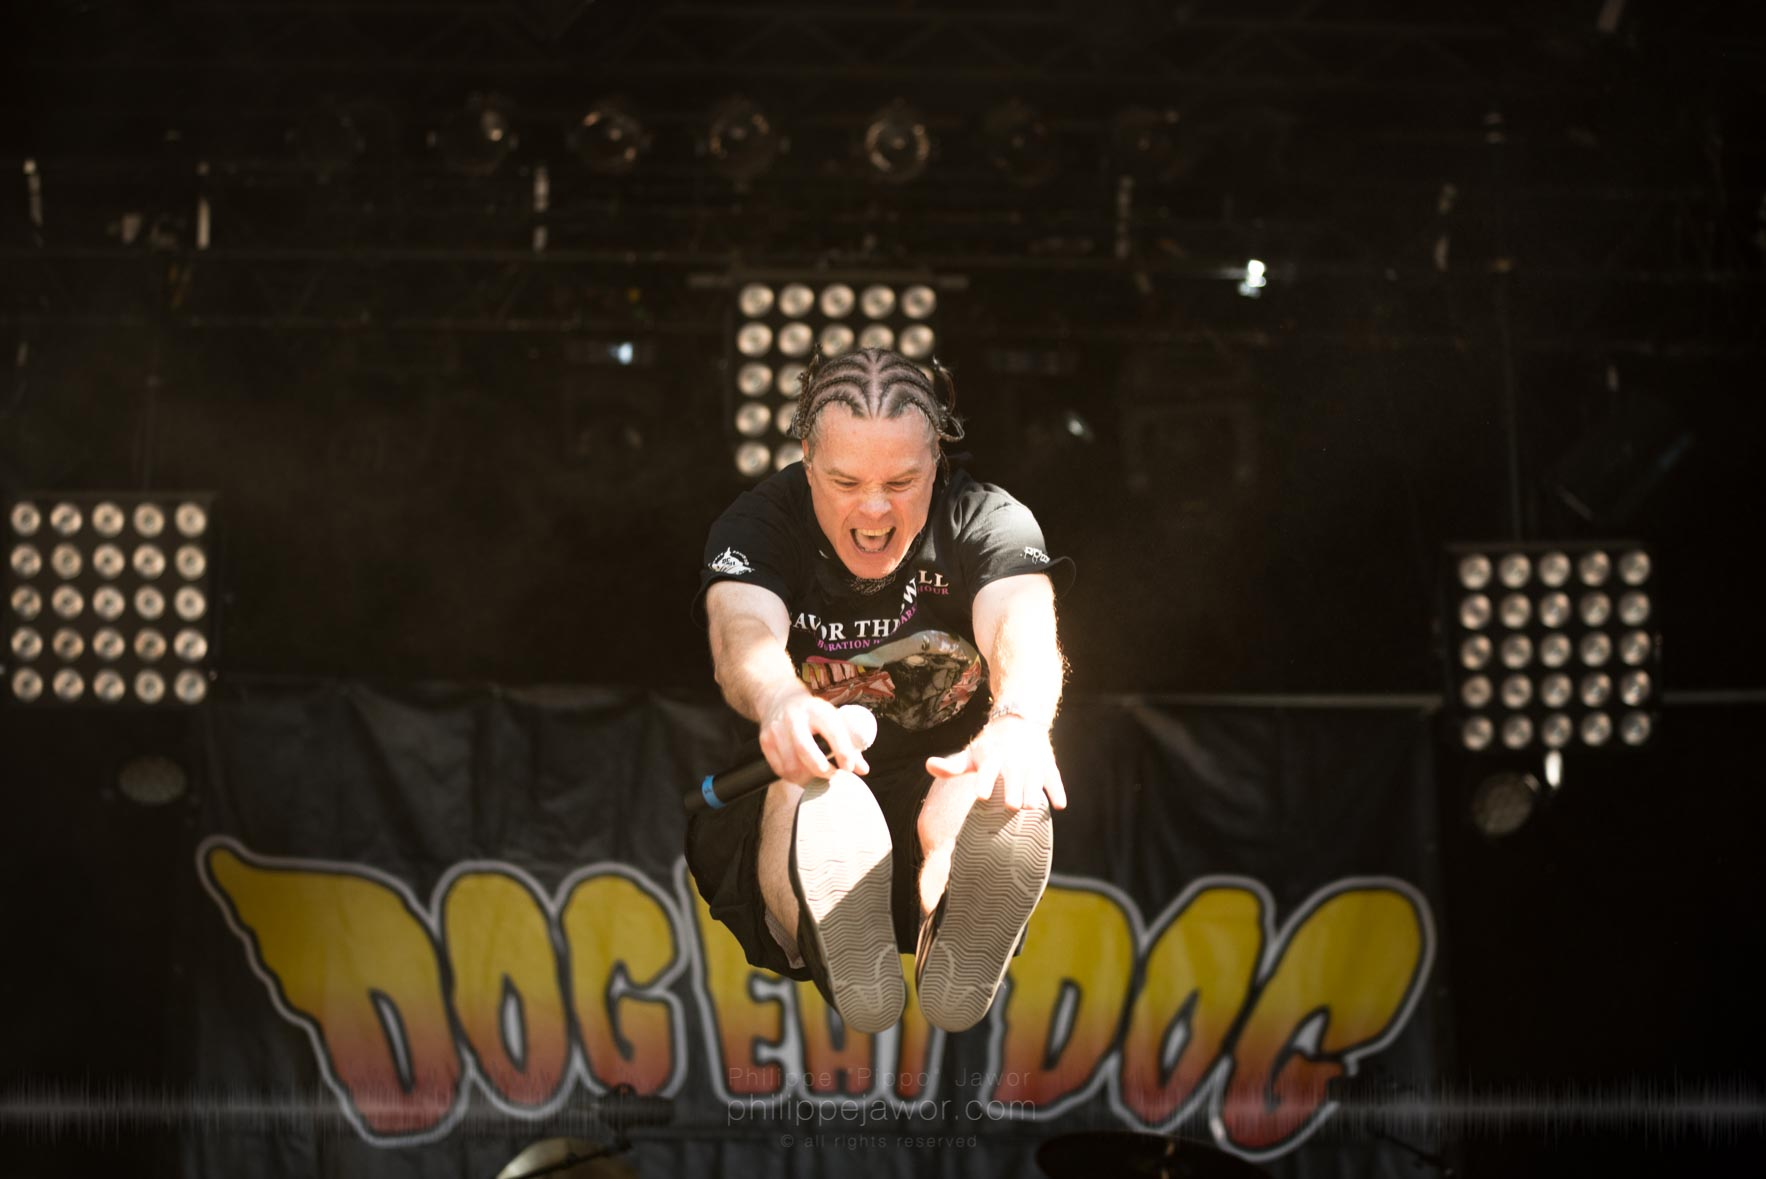 The American hardcore punk band Dog Eat Dog, live at Sylak Open Air festival, Saint Maurice de Gourdans, France, August 2017.  On assignment for Metal Obs' Magazine All rights reserved.